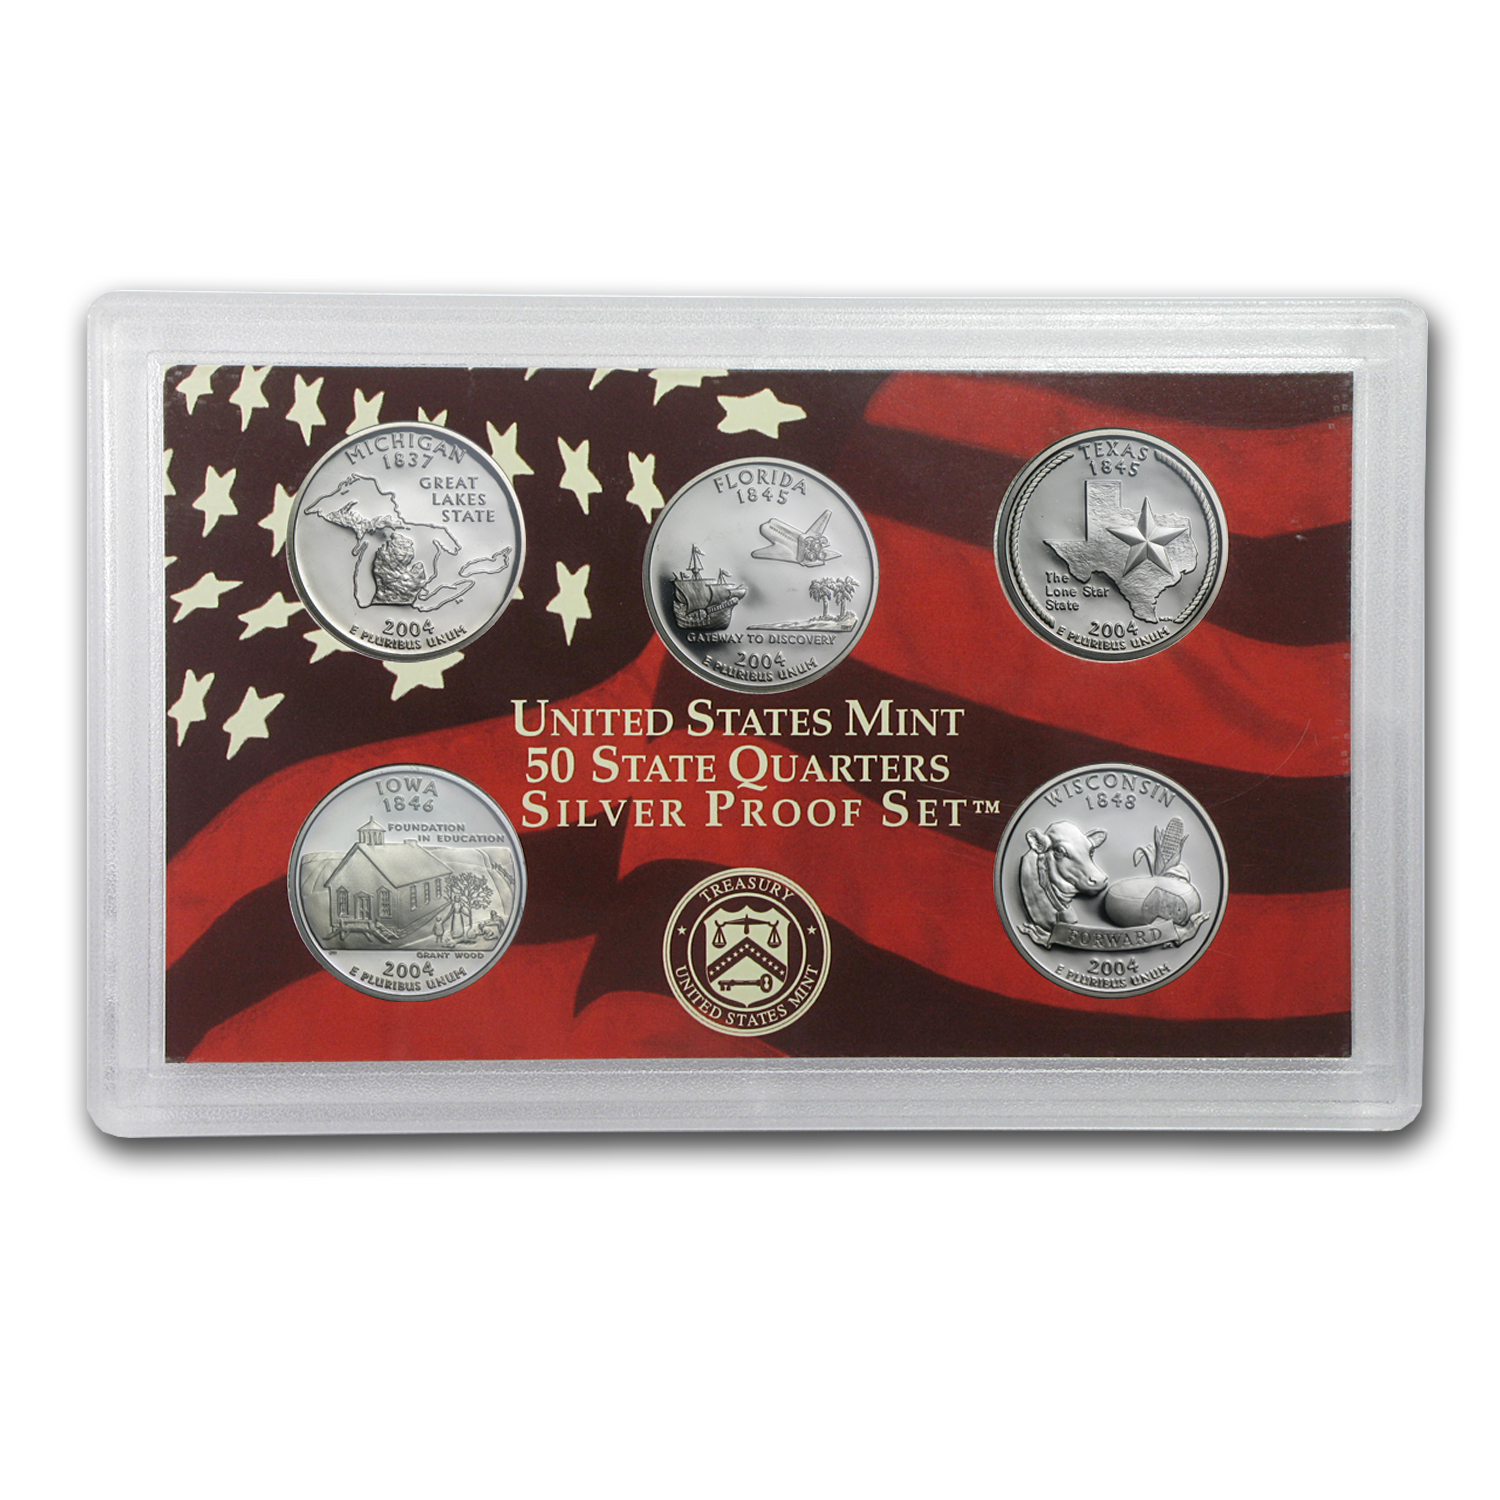 2004 State Quarters Silver Proof Set